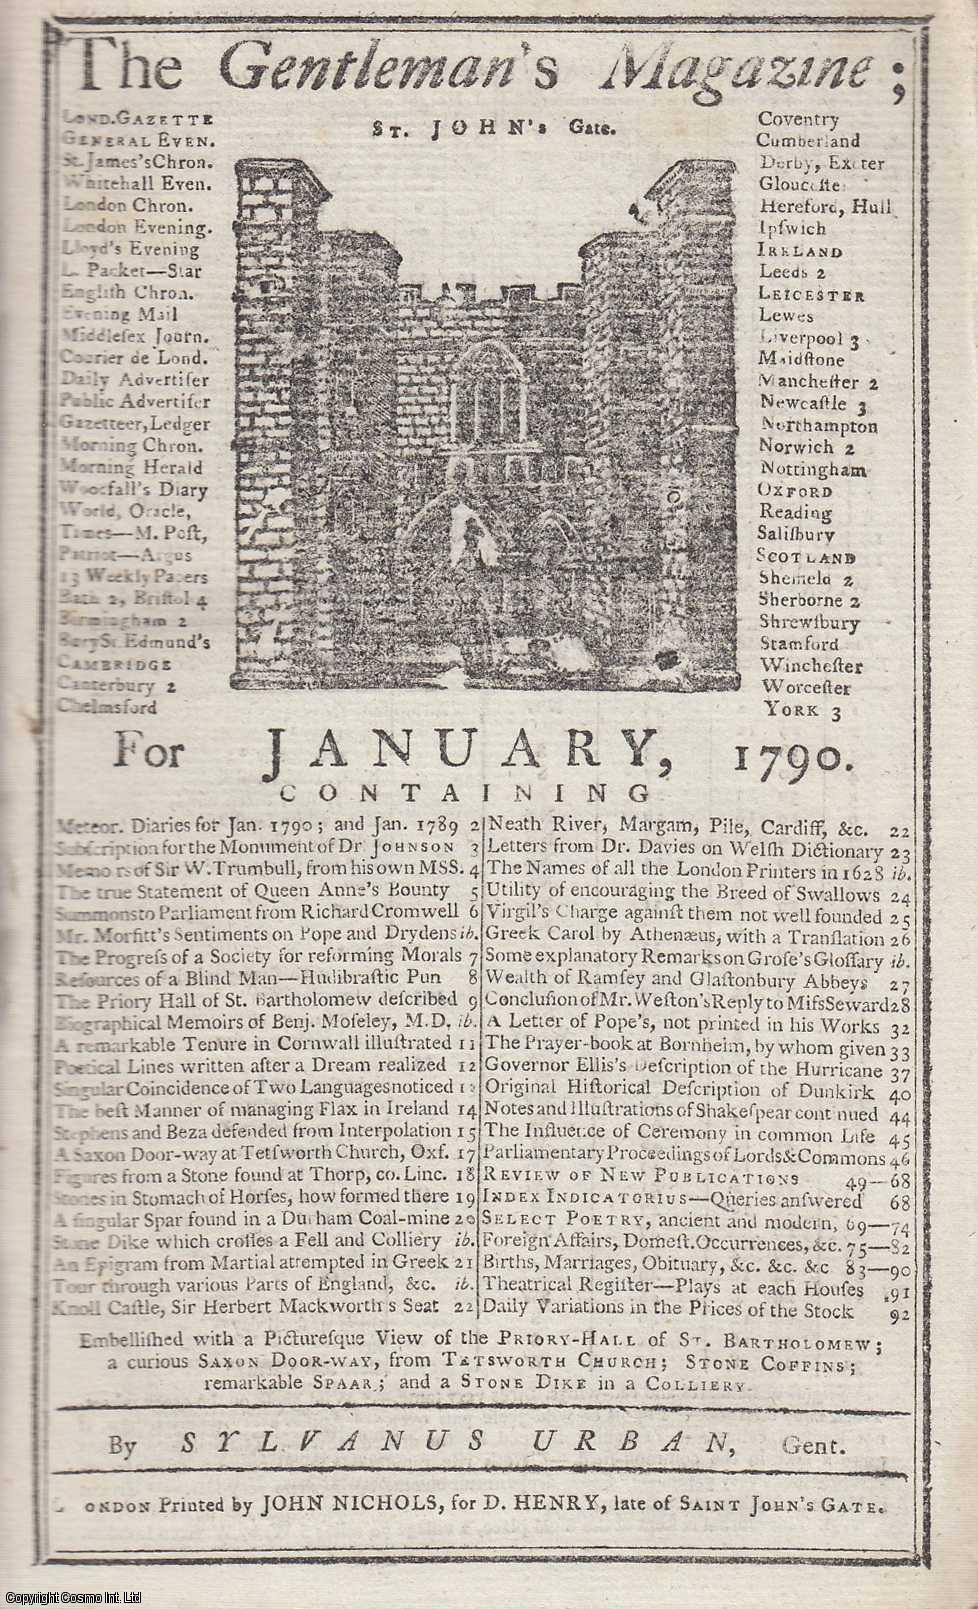 The Gentleman's Magazine for January 1790.  FEATURING Three Plates; A View of the Priory of St. Bartholomew, Smithfield, a Saxon Doorway, Mineral Specimens, etc., Urban, Sylvanus.